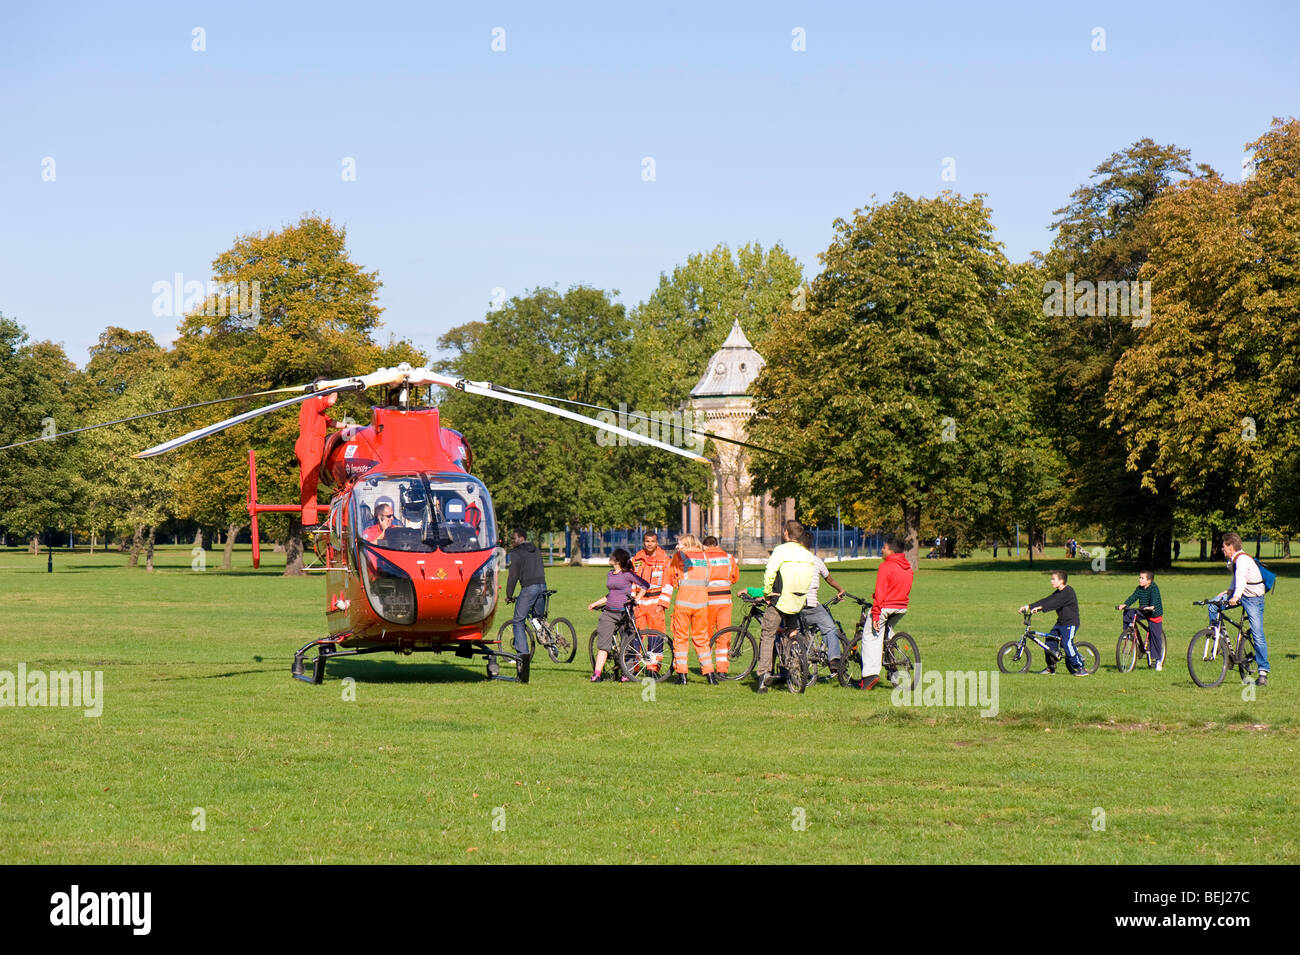 Victoria Park, Hackney, London, United Kingdom - Stock Image